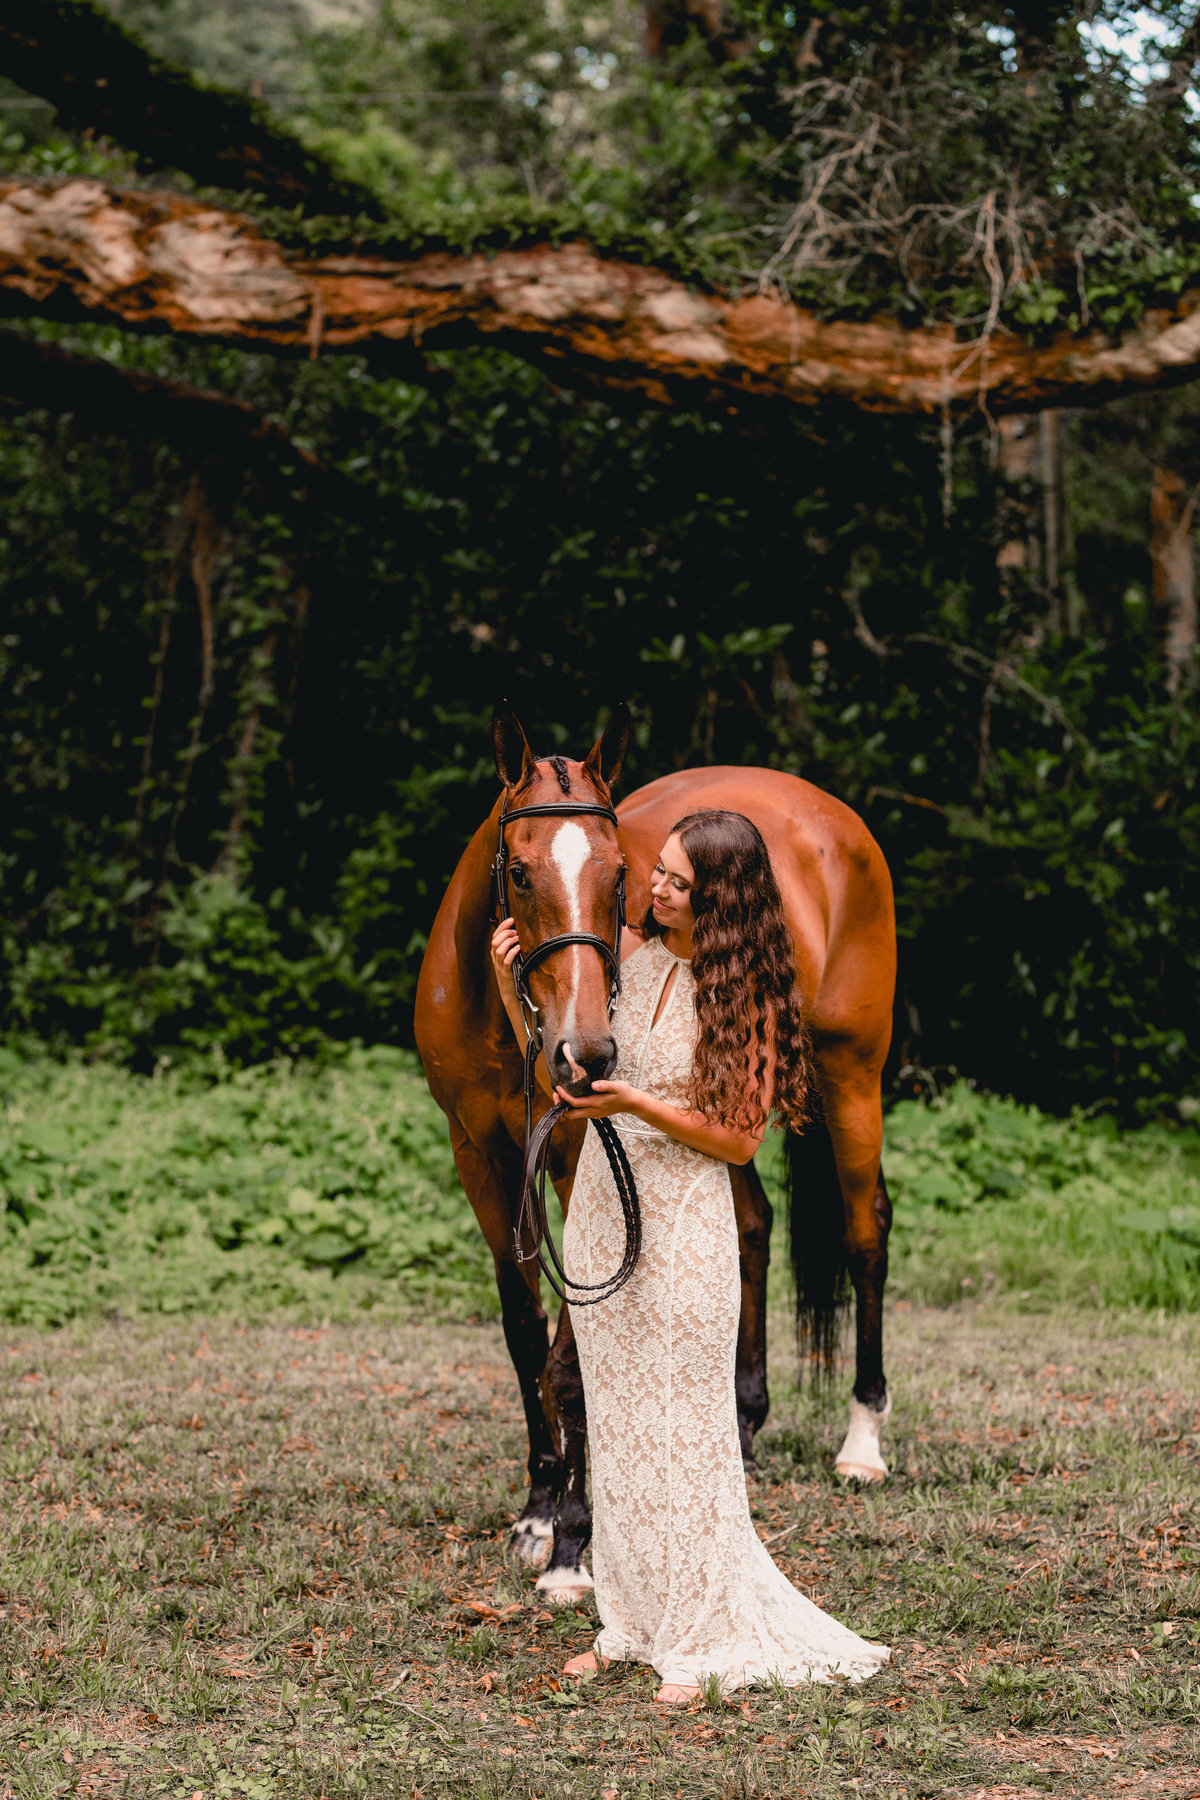 North Florida equine photographer with lifestyle and casual style.